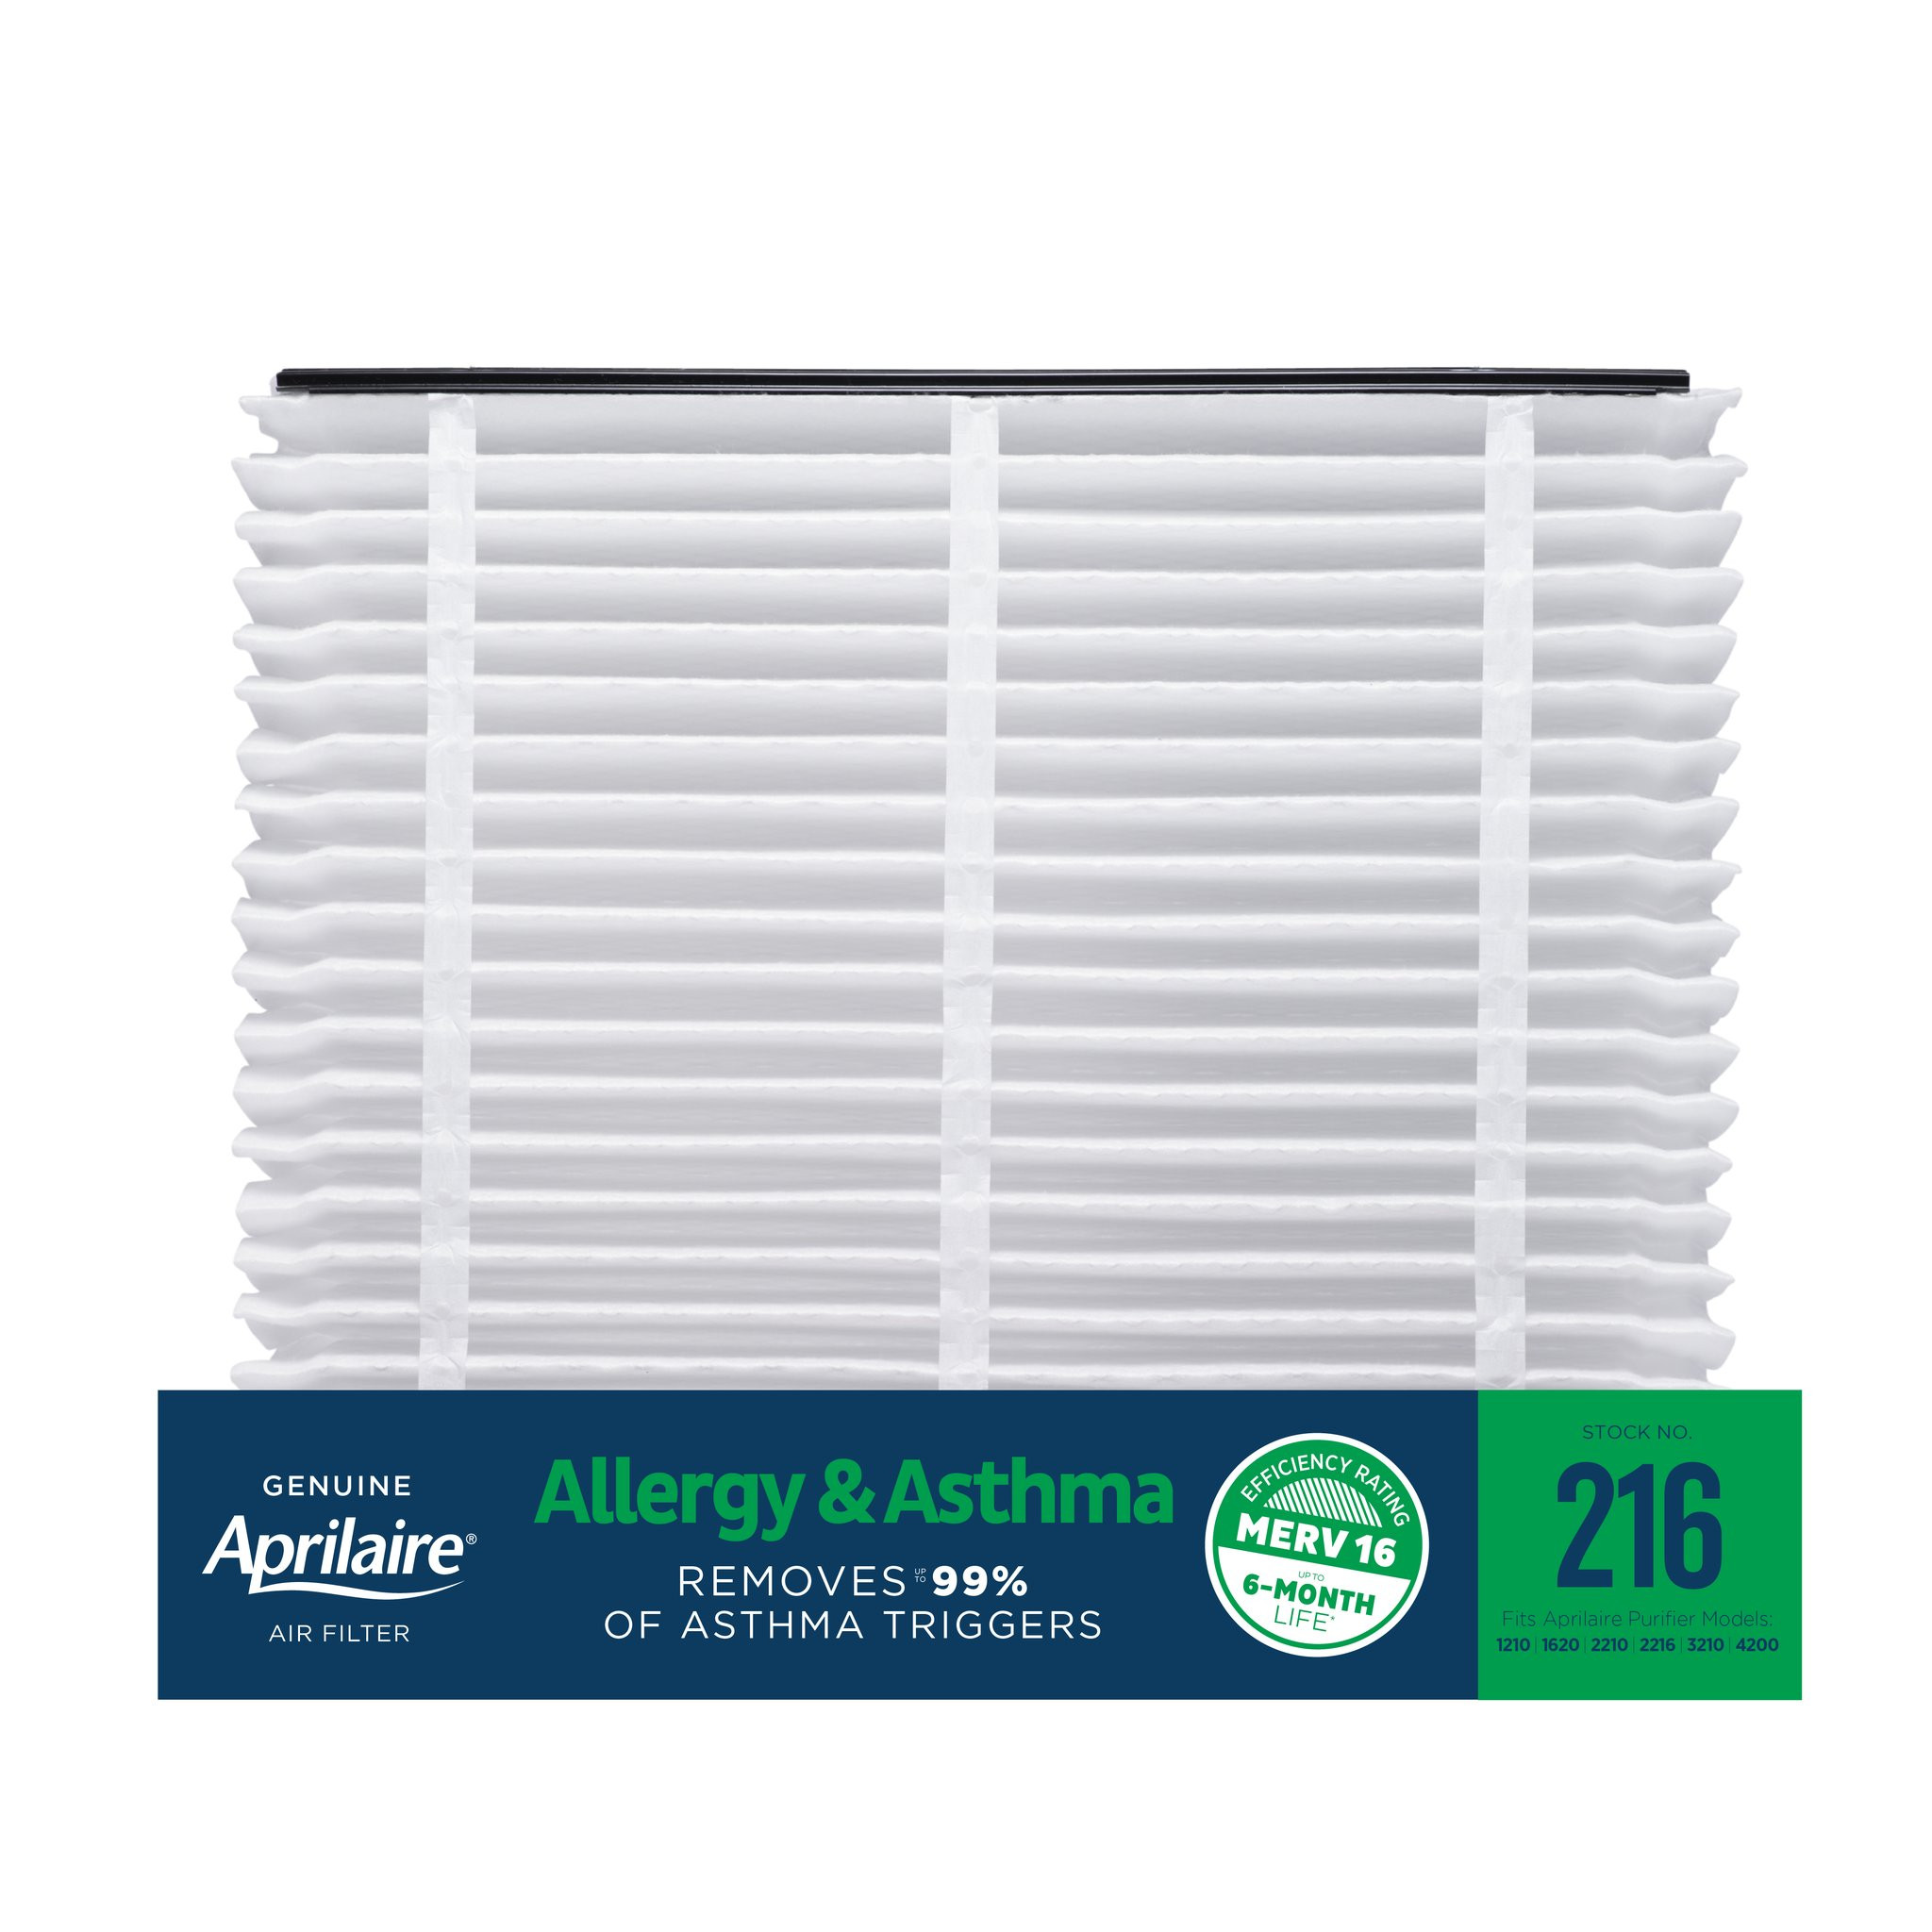 Aprilaire 216 Allergy & Asthma Air Filter Replacement for Whole-Home Air Purifiers, MERV 16